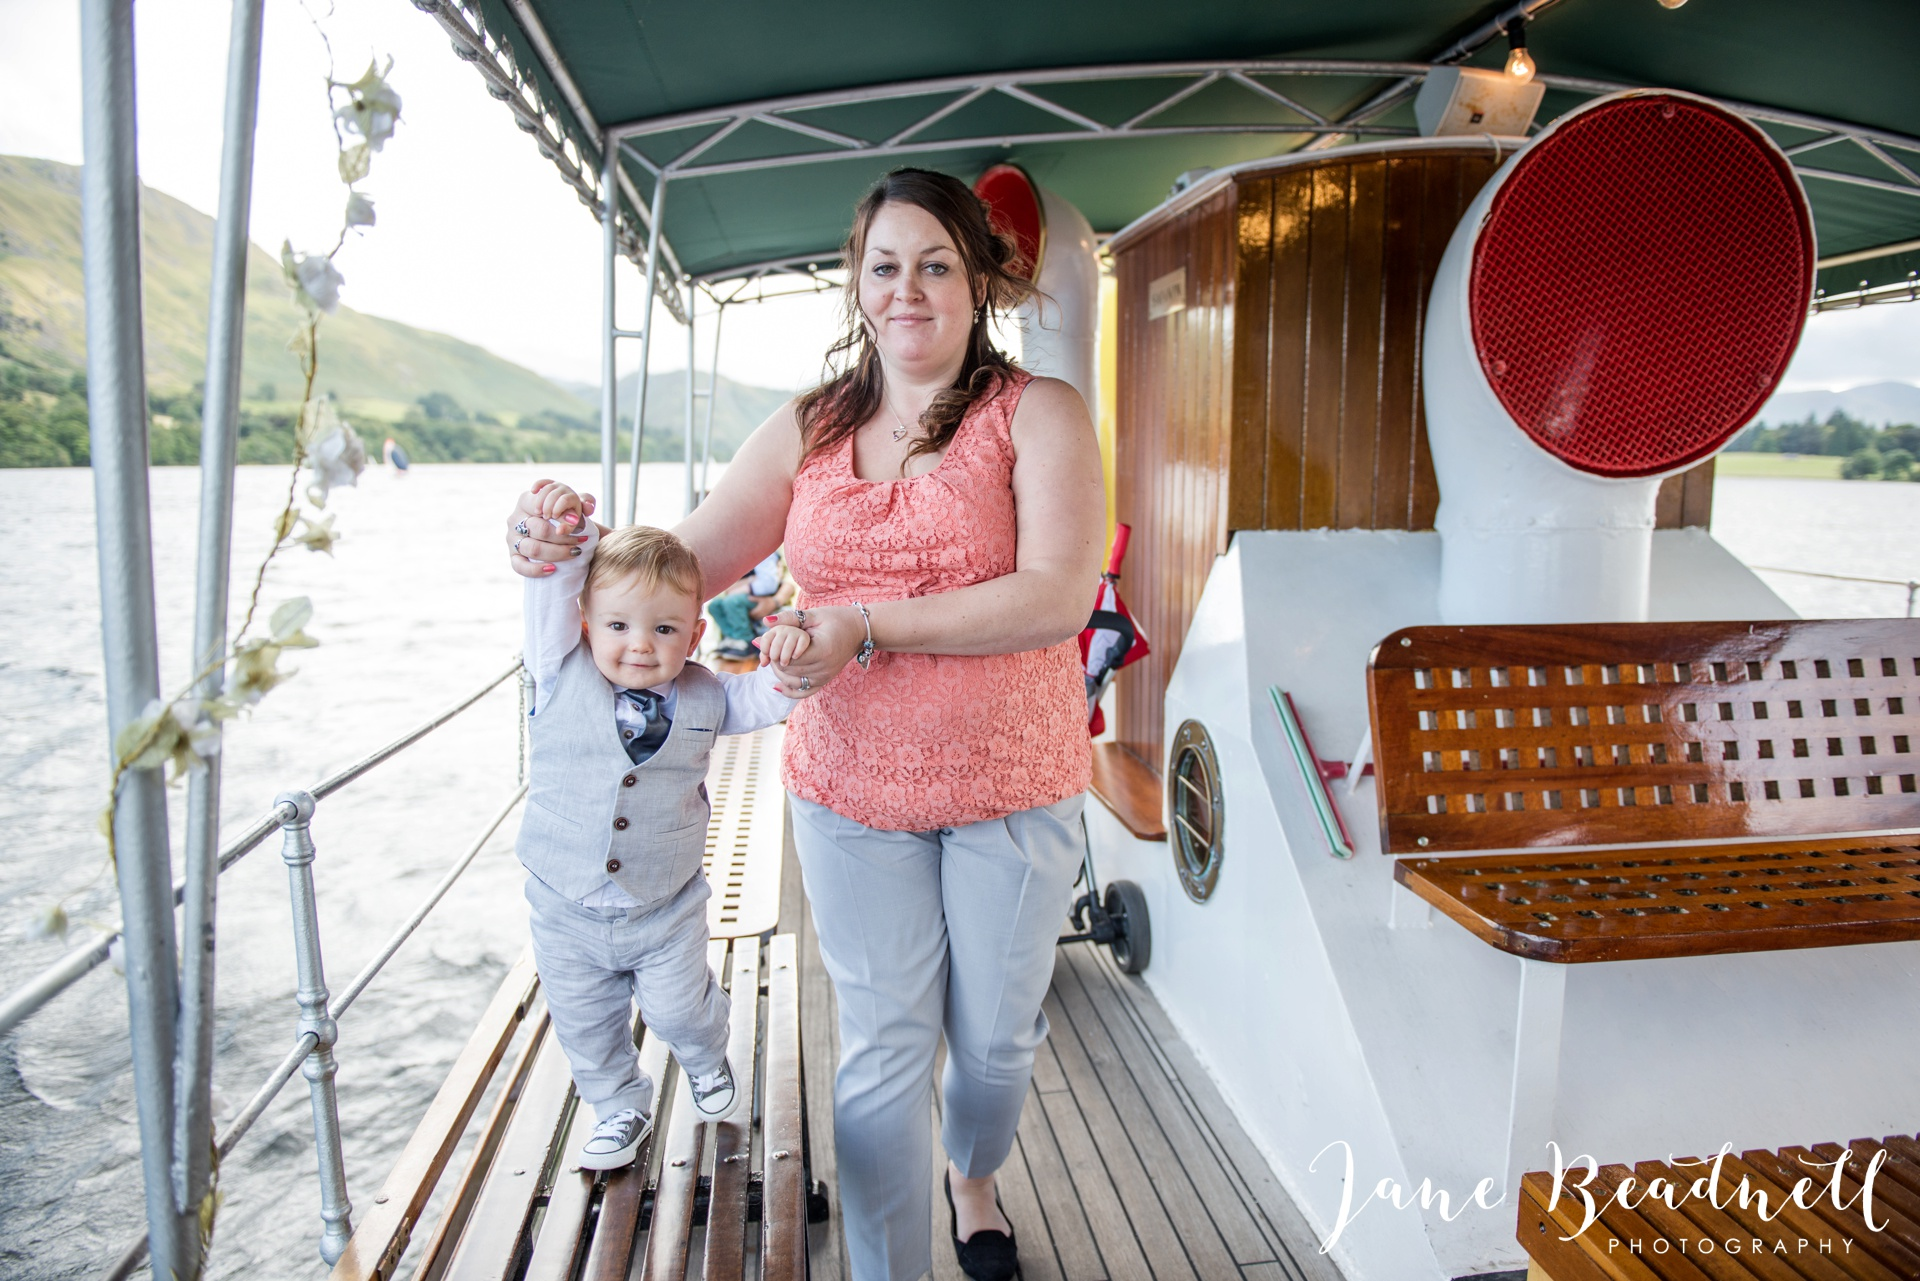 Jane Beadnell fine art wedding photographer Lake Ullswater Lake District_0022